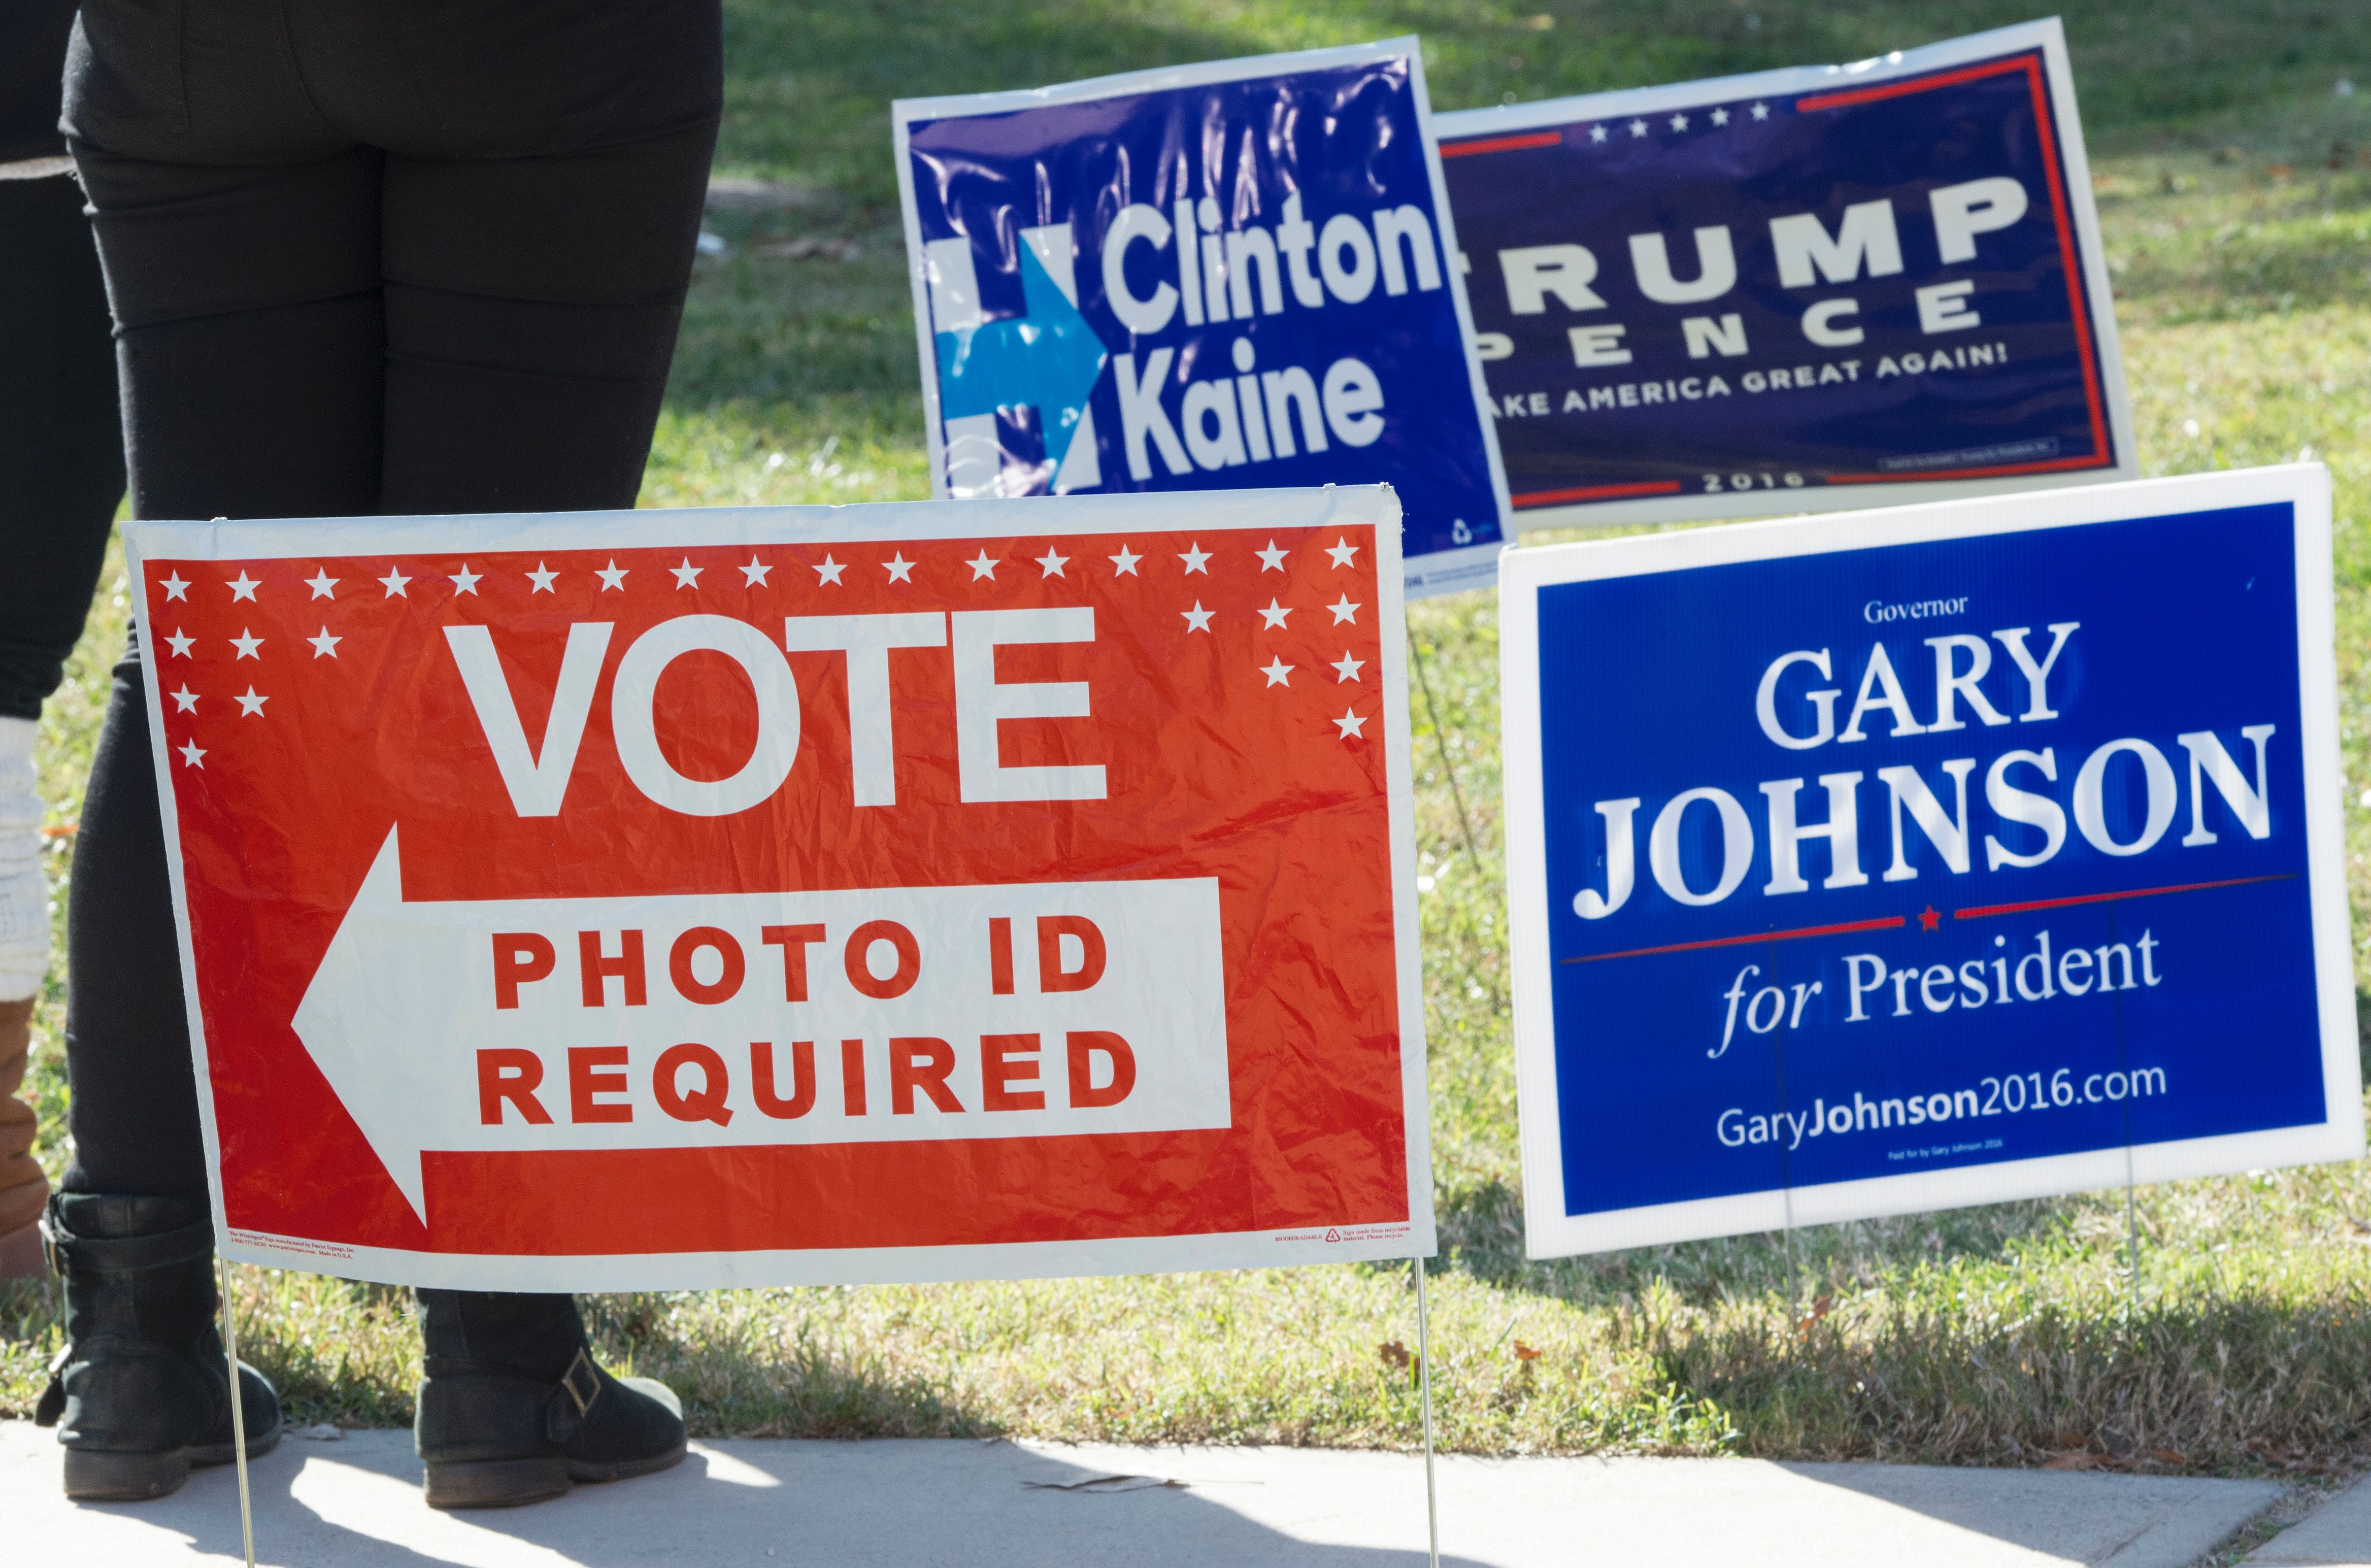 Signs are seen on a lawn near a US polling place in Arlington, Virginia, November 8, 2016.